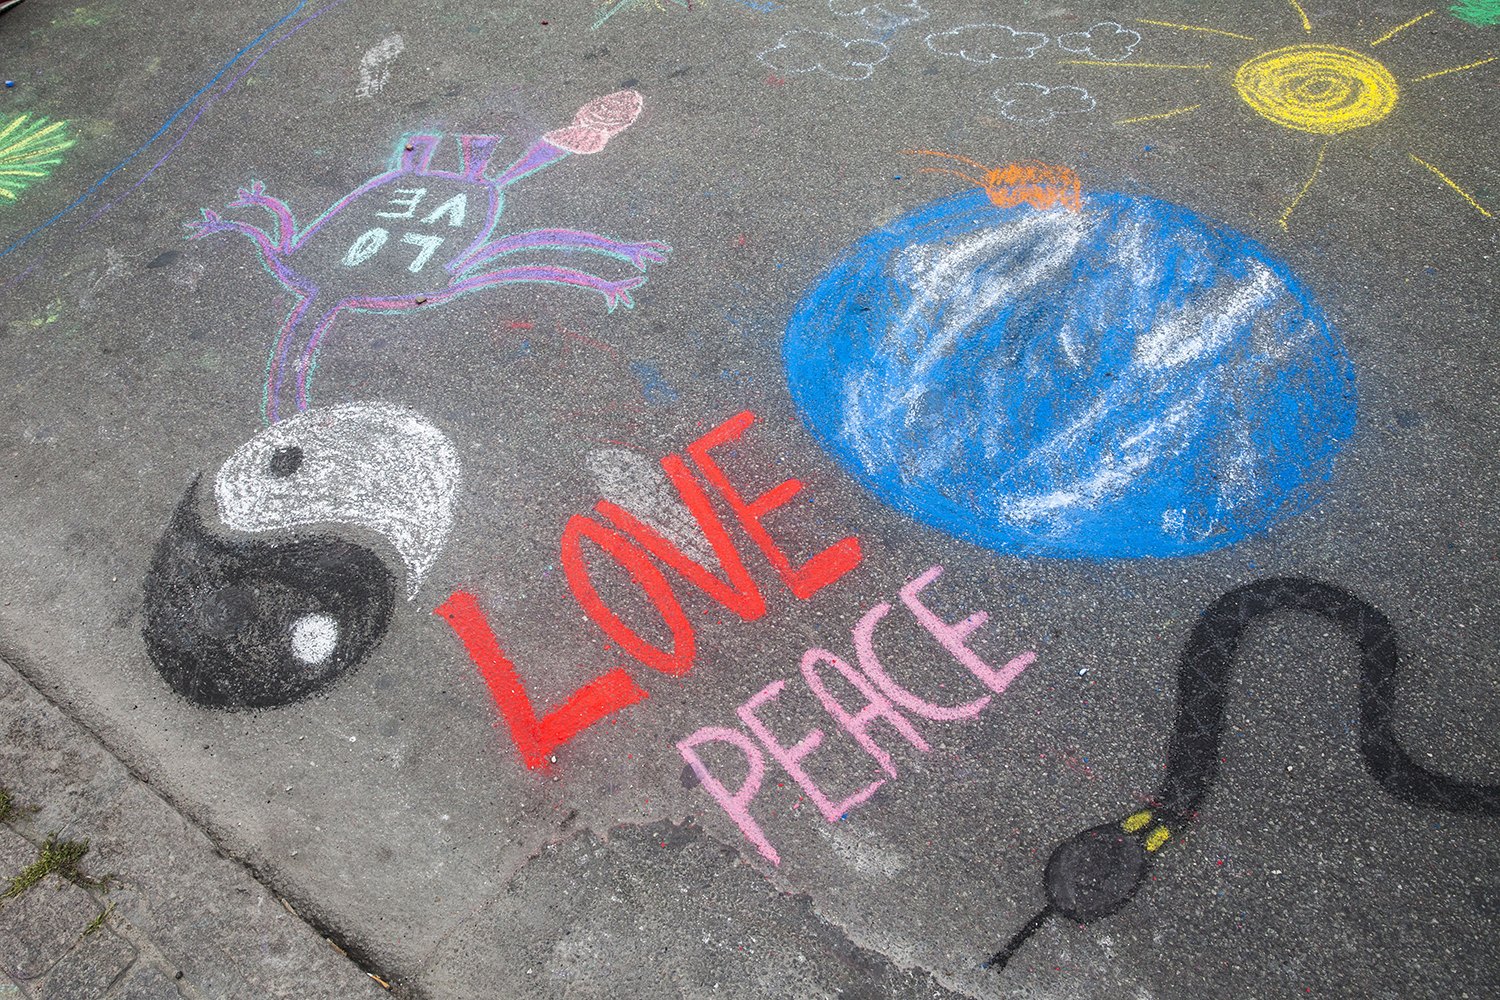 chalk_painting_day_18-09-16_helenalundquist_7